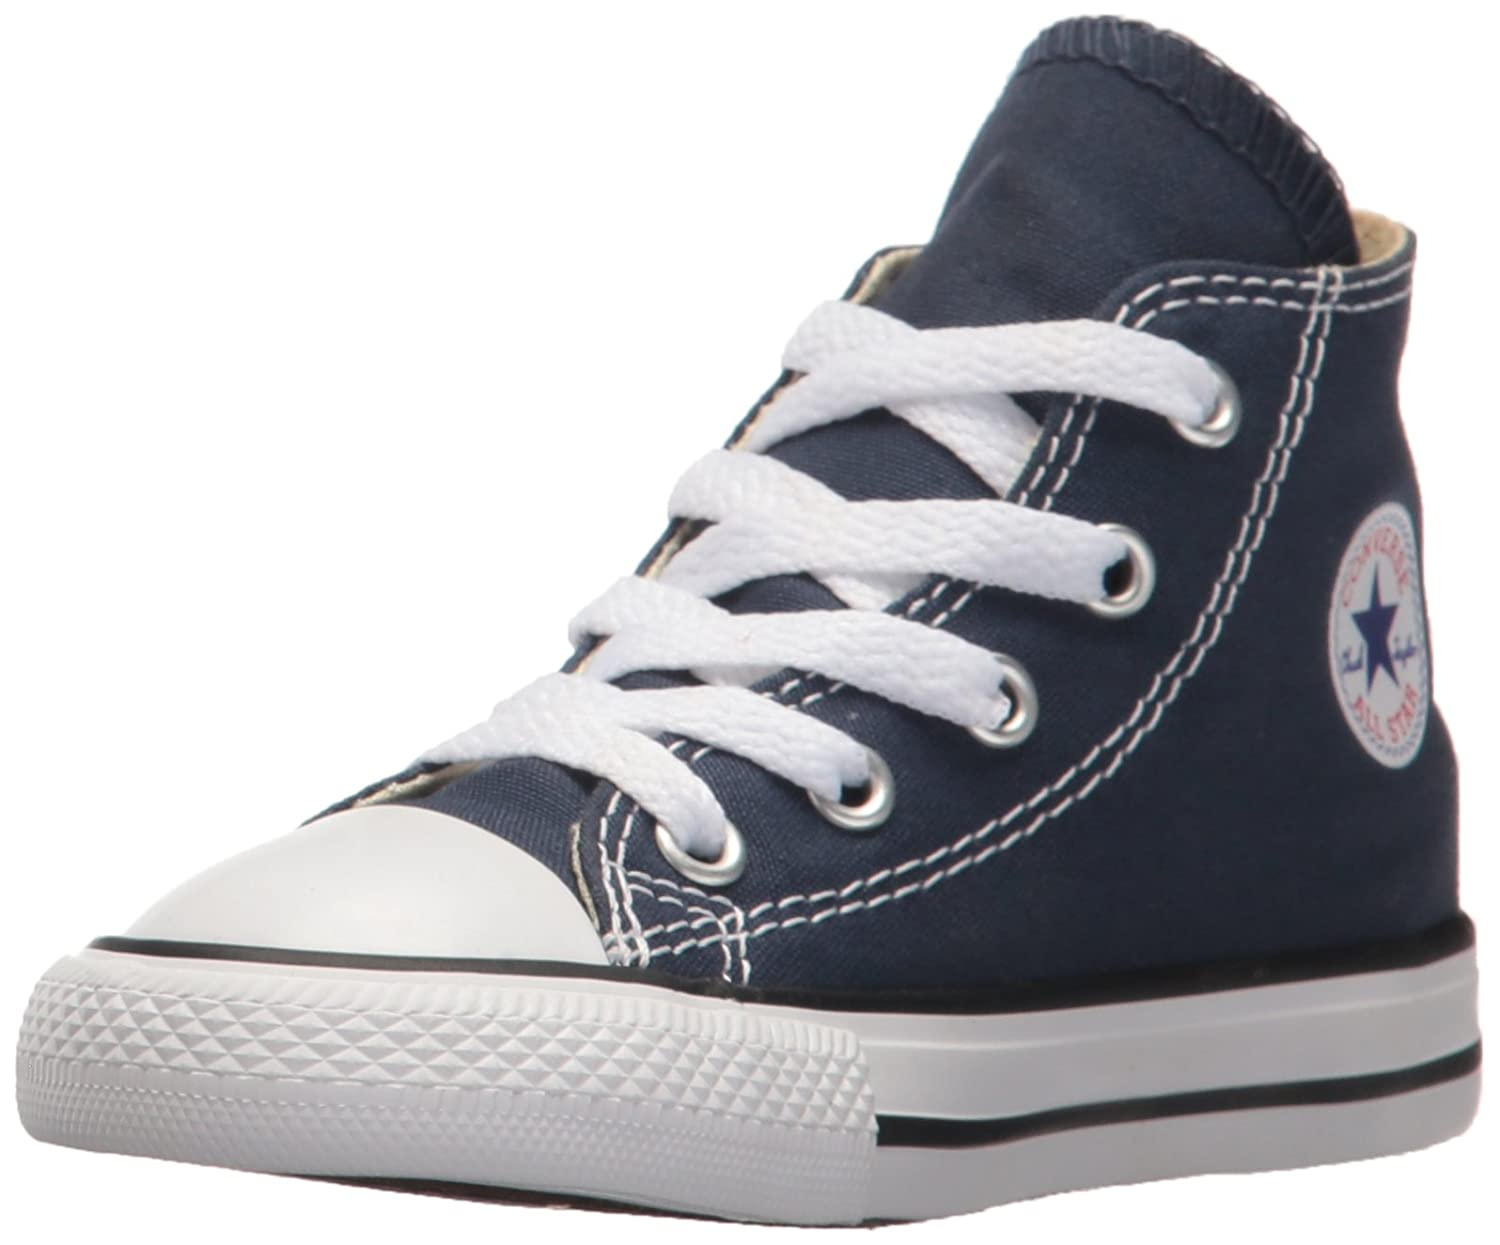 Converse Chuck Taylor All Star Toddler High Top, Scarpe per bambini